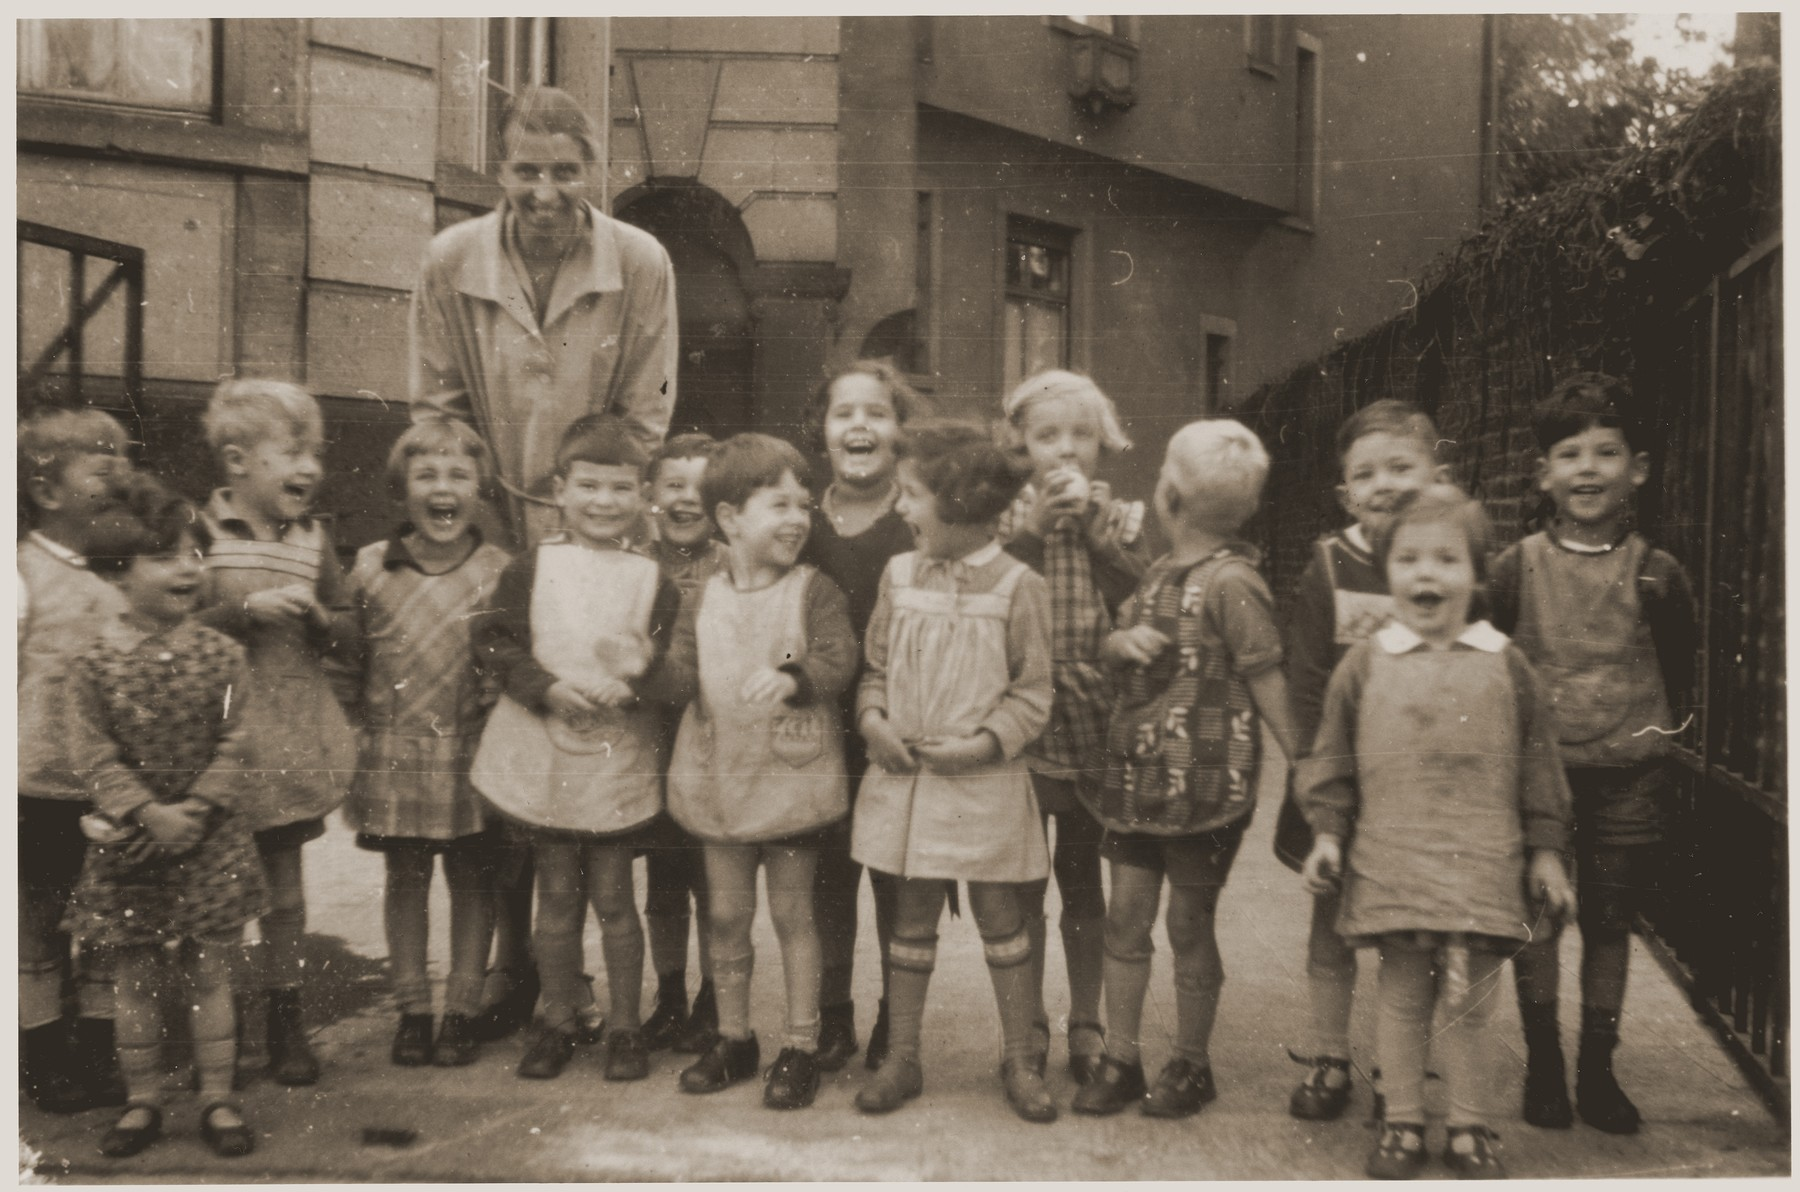 Lore Gotthelf (back row center) with her nursery school class in Frankfurt.  Also pictured is Gunther Alfred Hess (third from right).